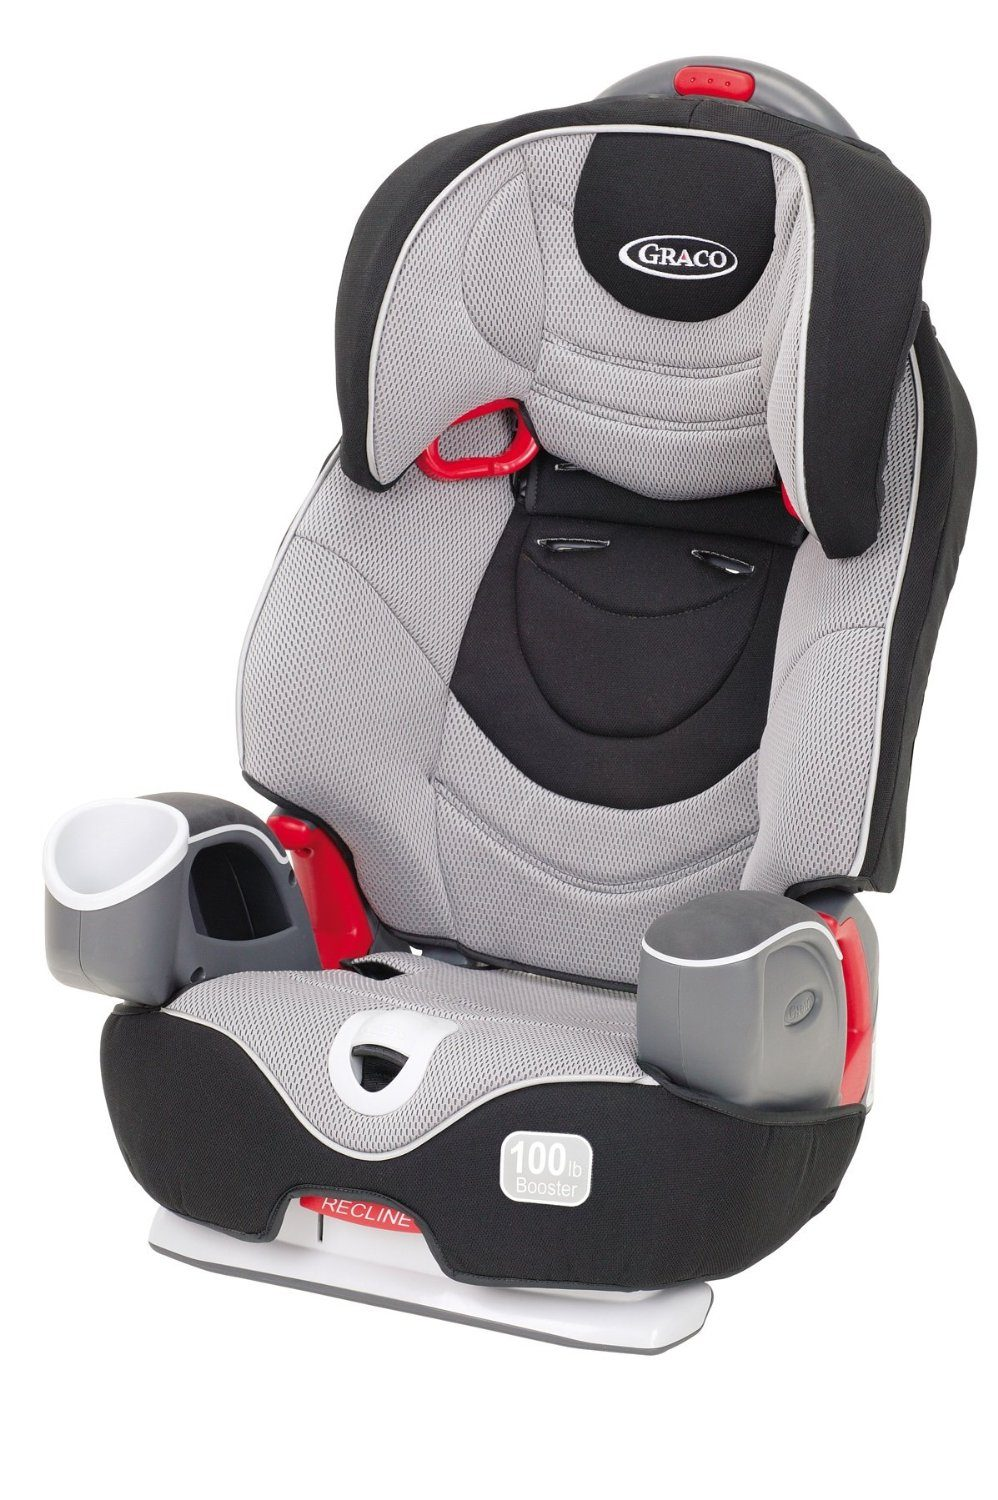 Graco is one of the best known makers of products for children. Moms and  dads know that Graco makes top quality and well-designed car seats,  strollers, ...